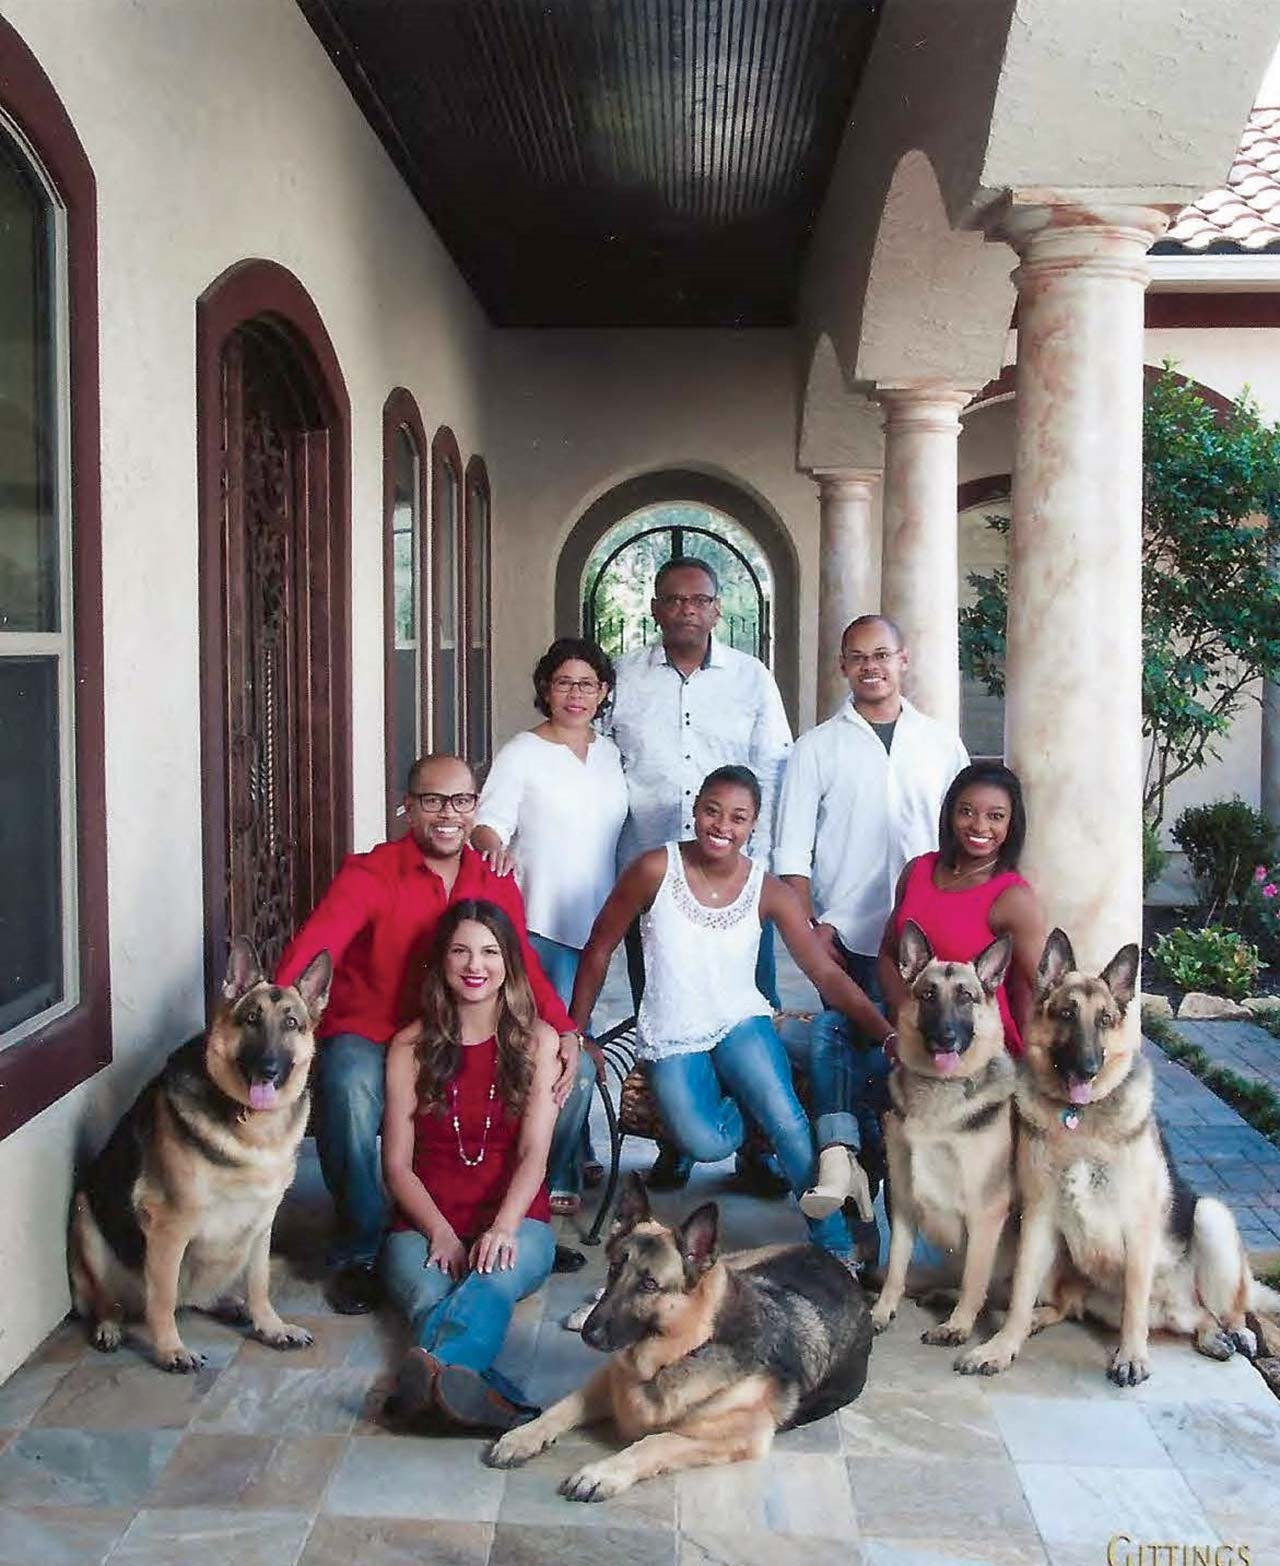 The Biles family at Ron and Nellie's home in 2015.